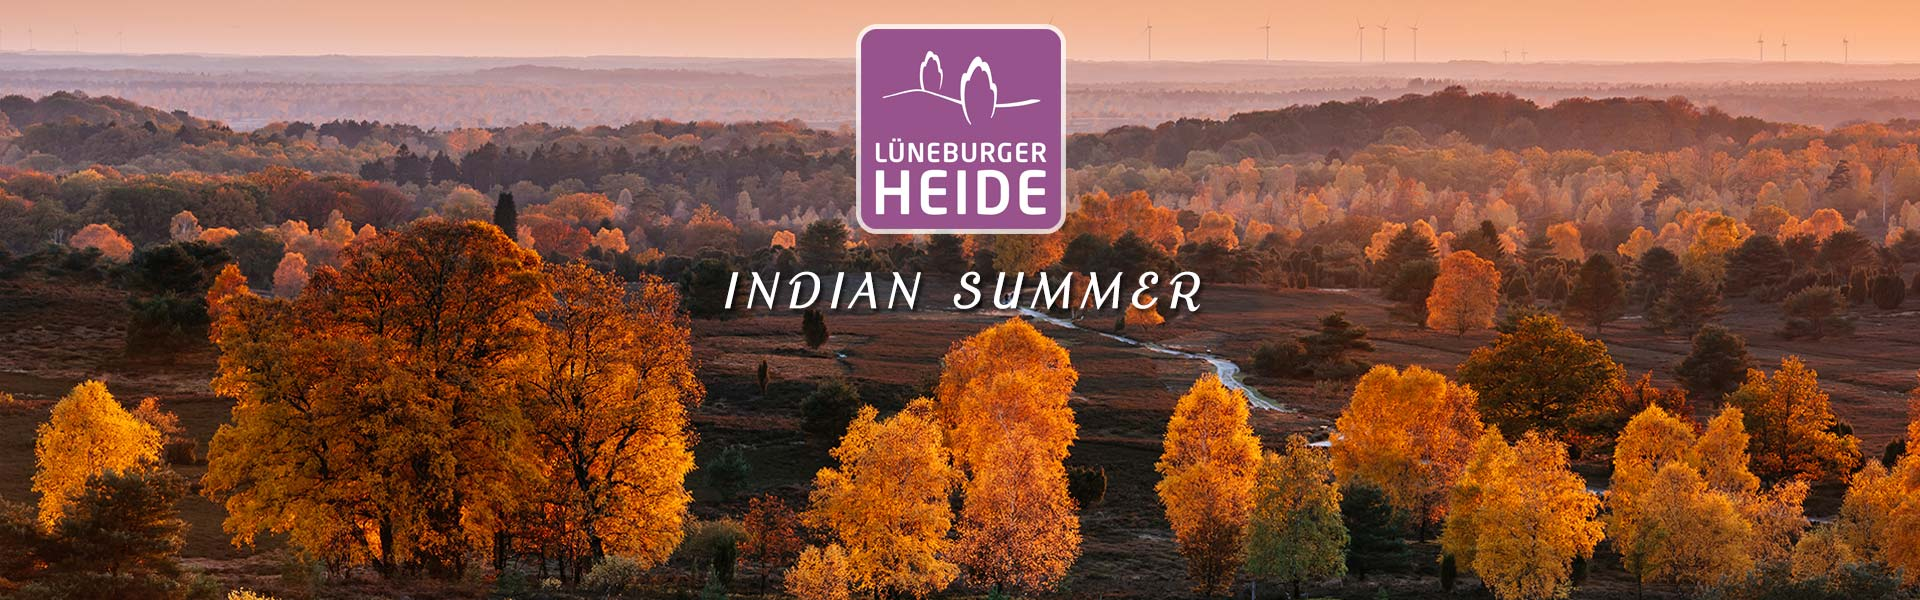 Der Indian Summer in der Lüneburger Heide